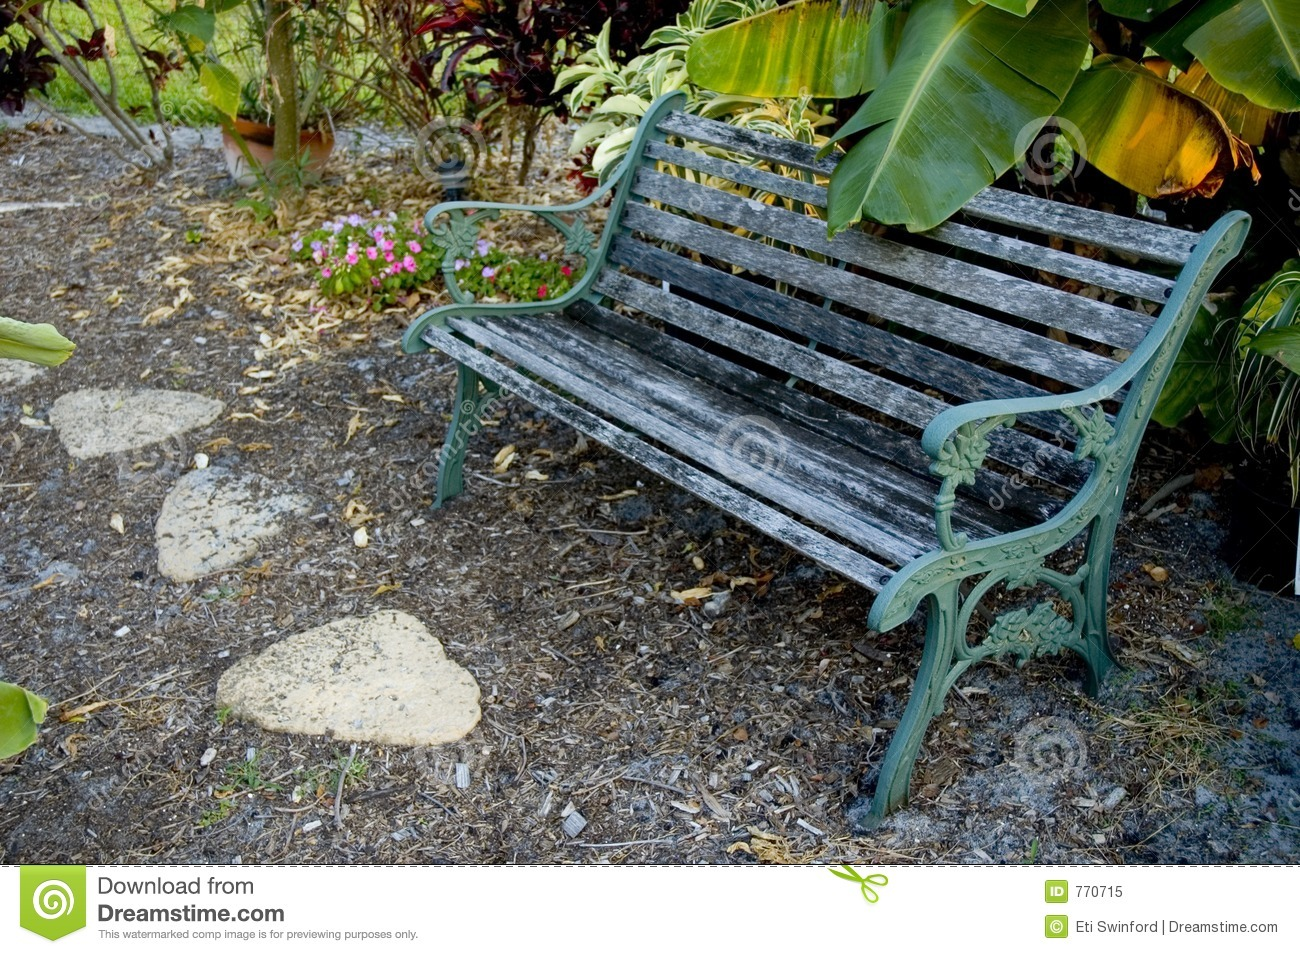 Banc de jardin photo libre de droits image 770715 for Plan banc de jardin